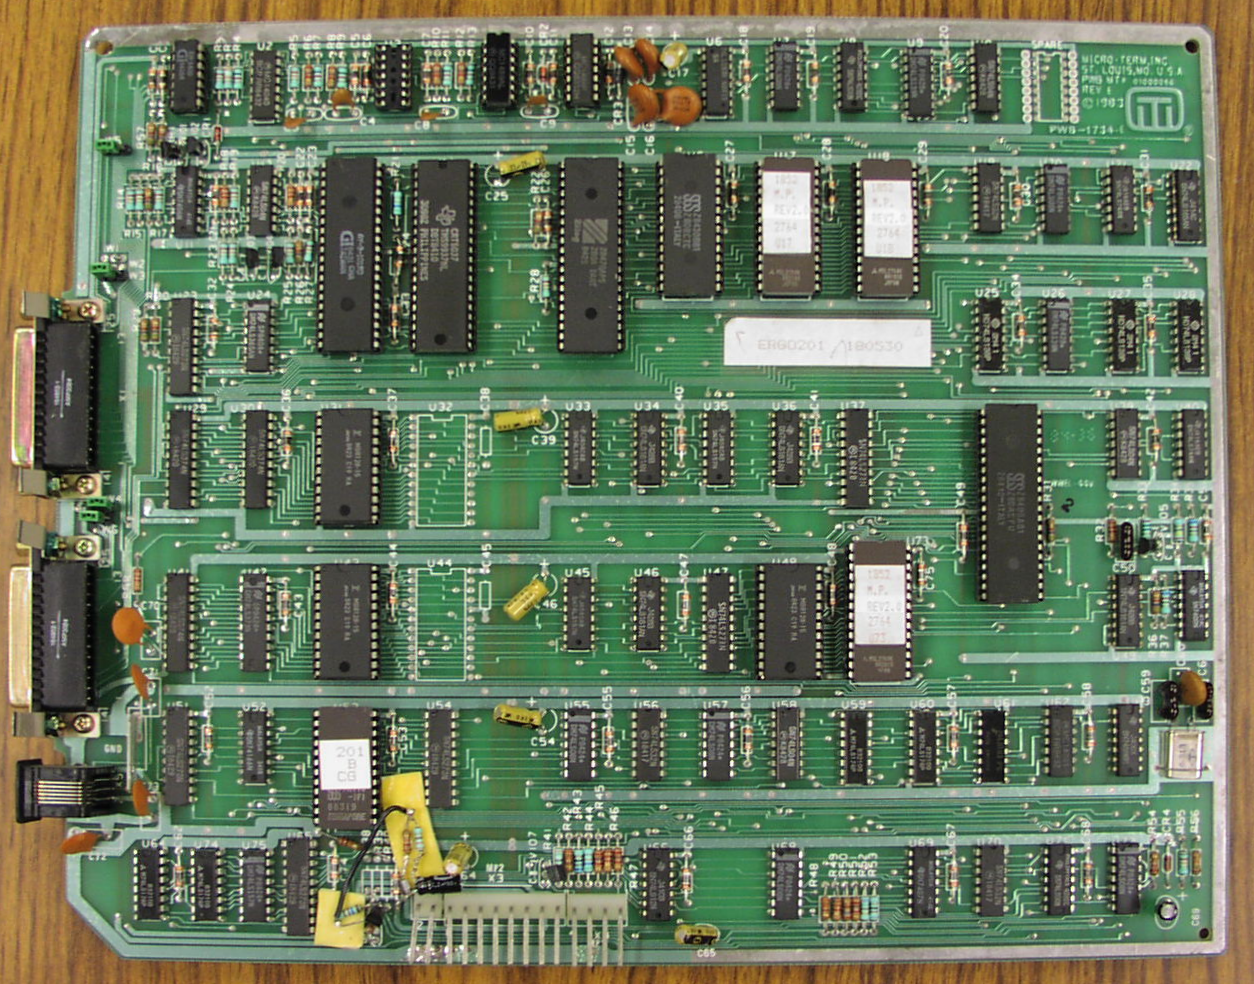 File:Computer-photo-Micro Term Inc-(Micro Term-ERGO-201)-motherboard